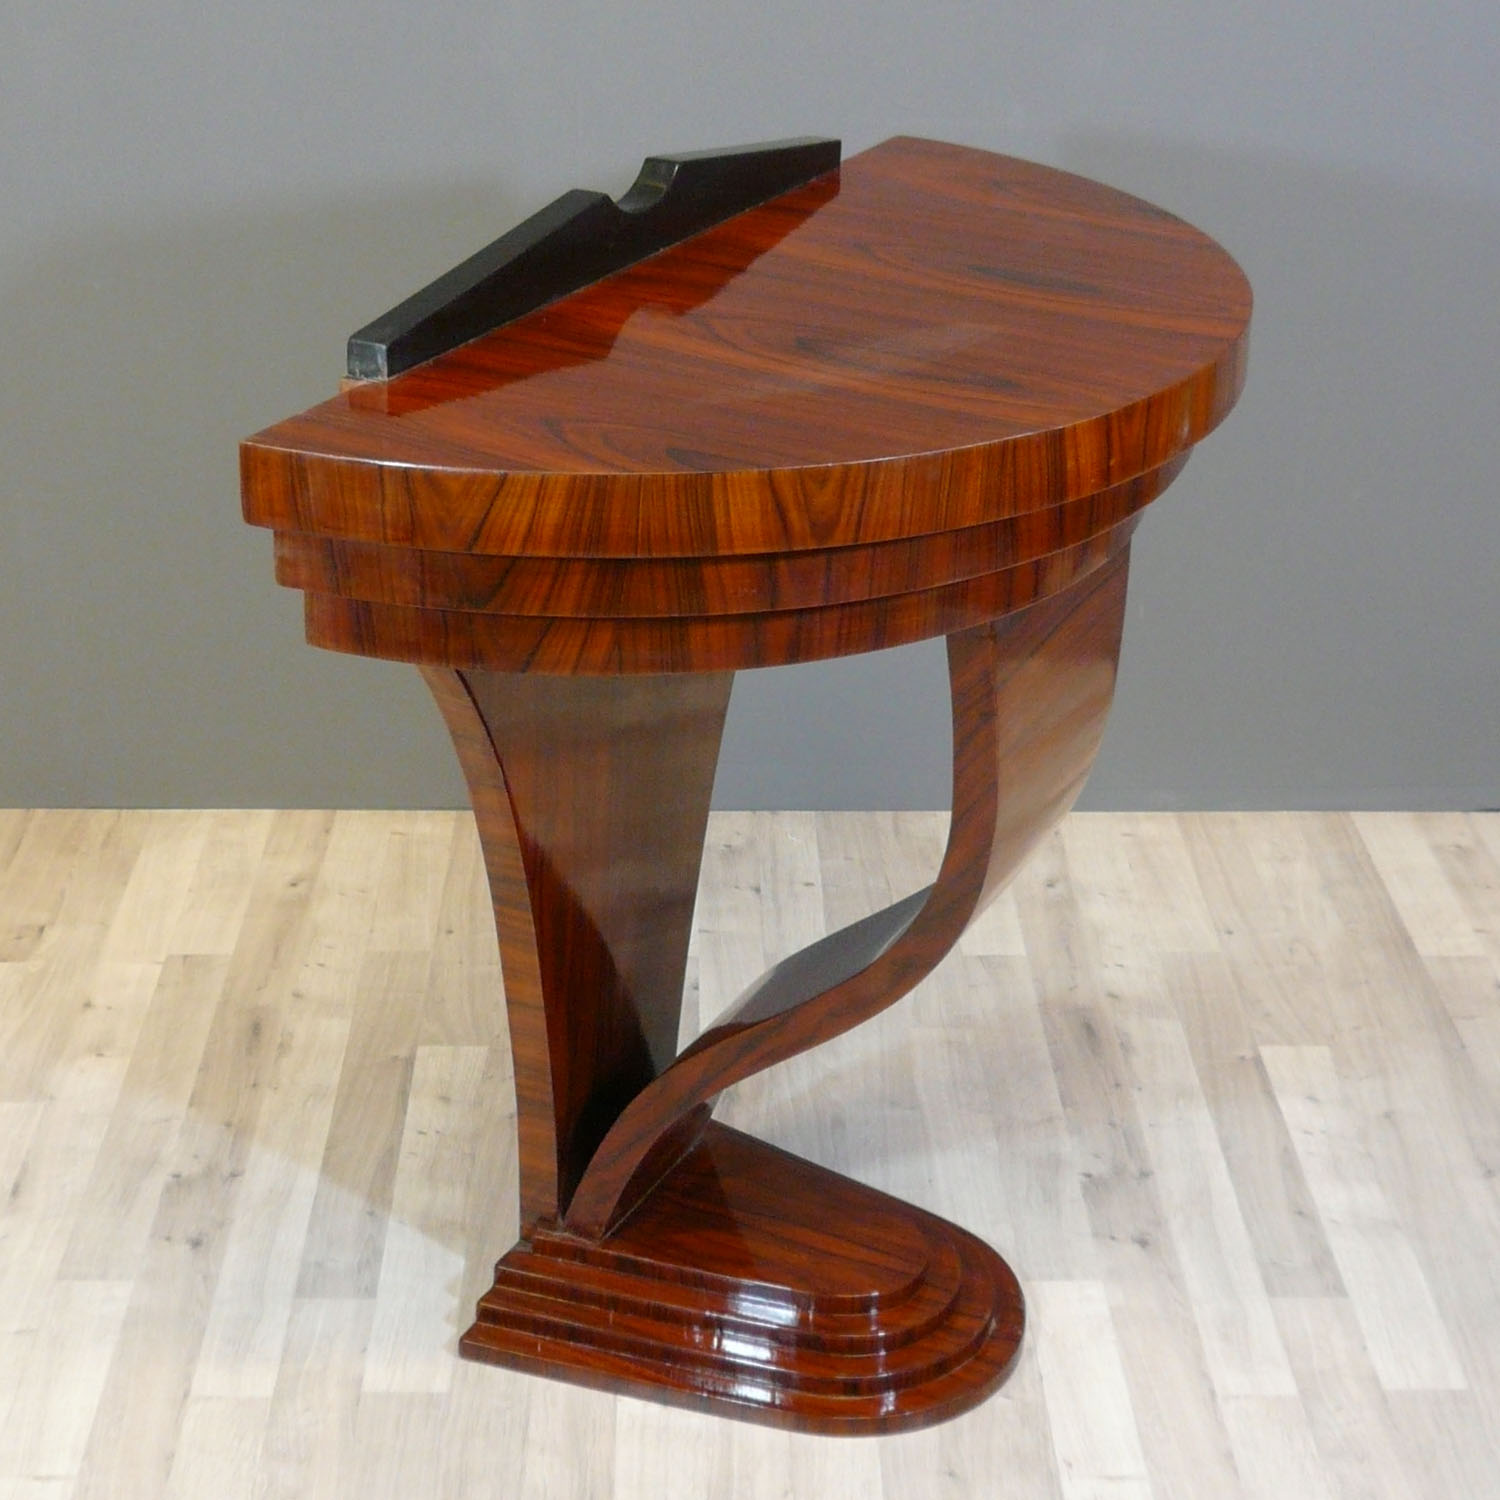 Art deco console - Art deco furniture